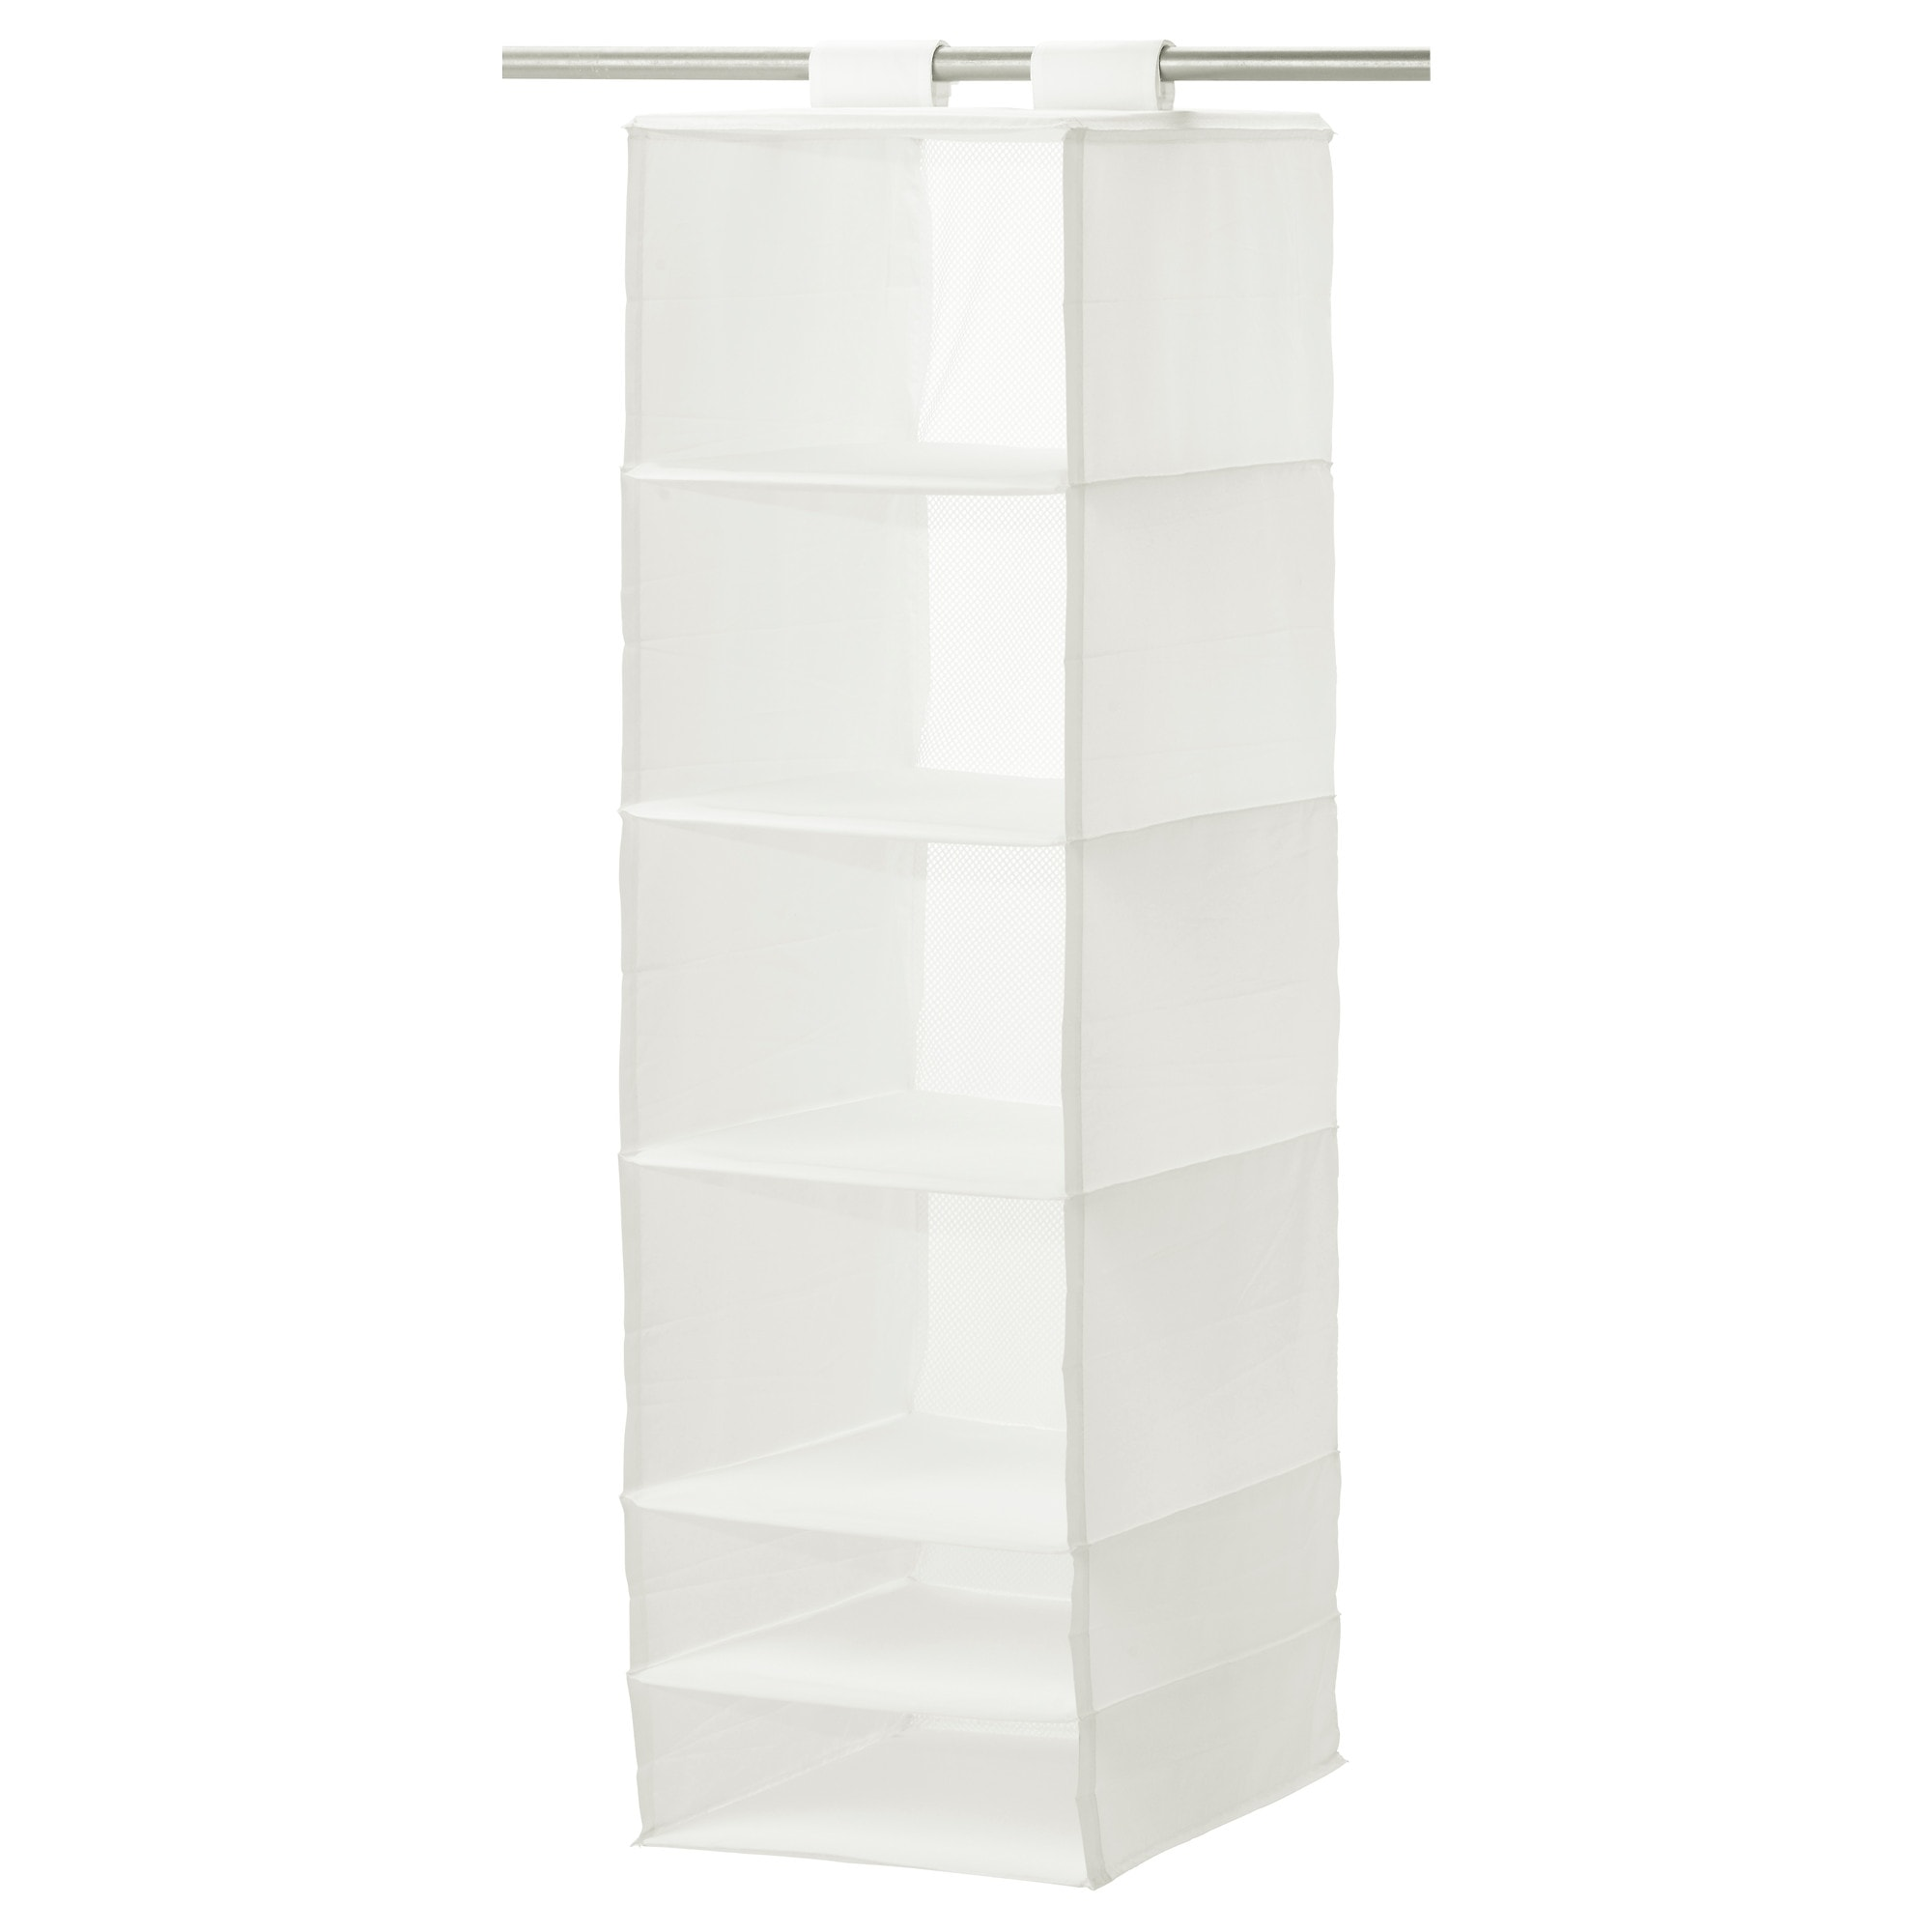 SKUBB Organizer with 6 partments IKEA